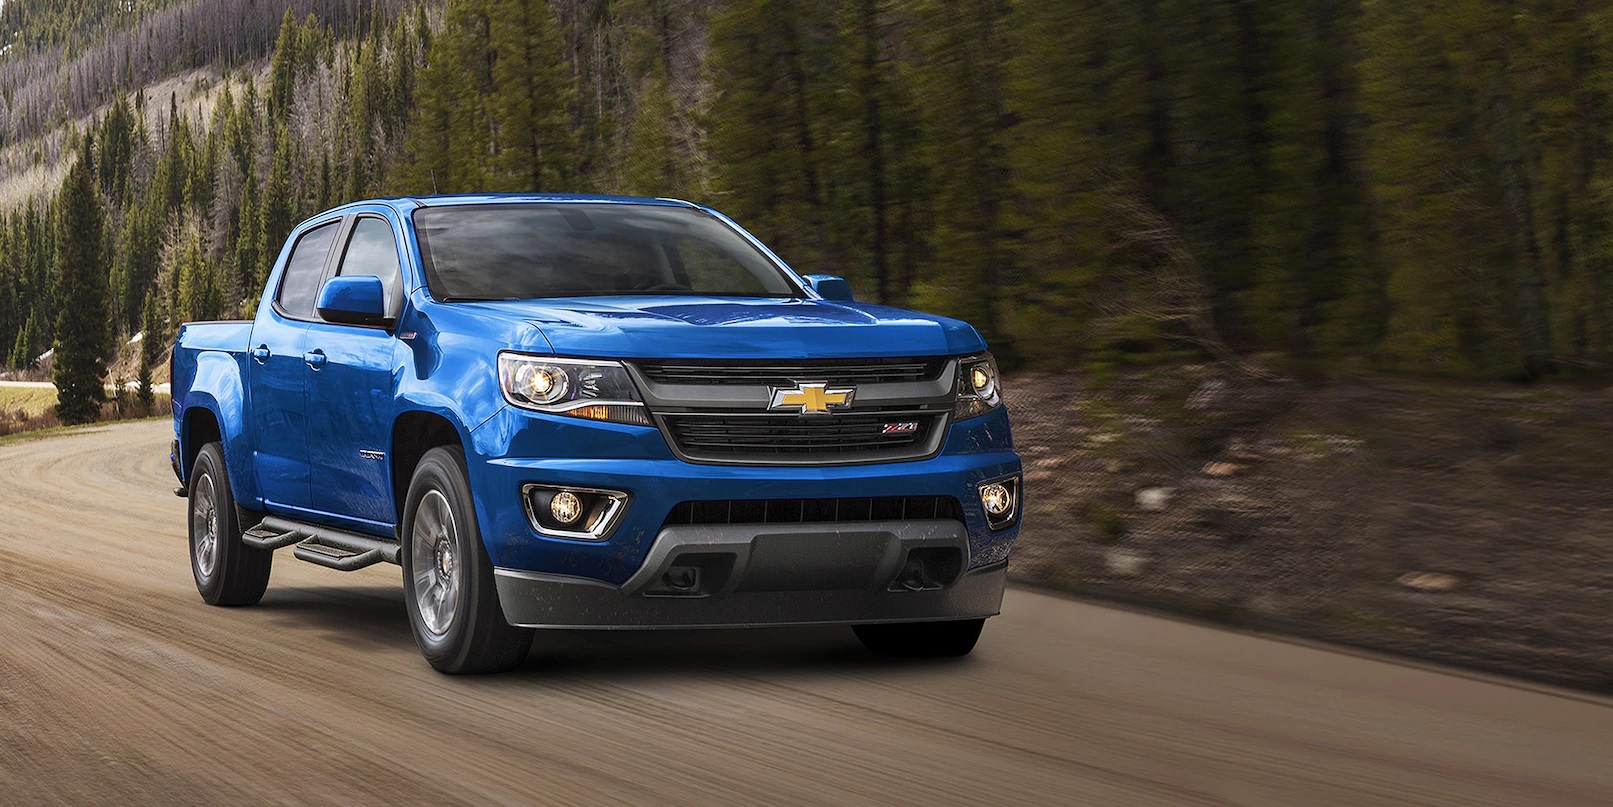 Chevrolet Colorado 2018 a la venta cerca de Washington, DC